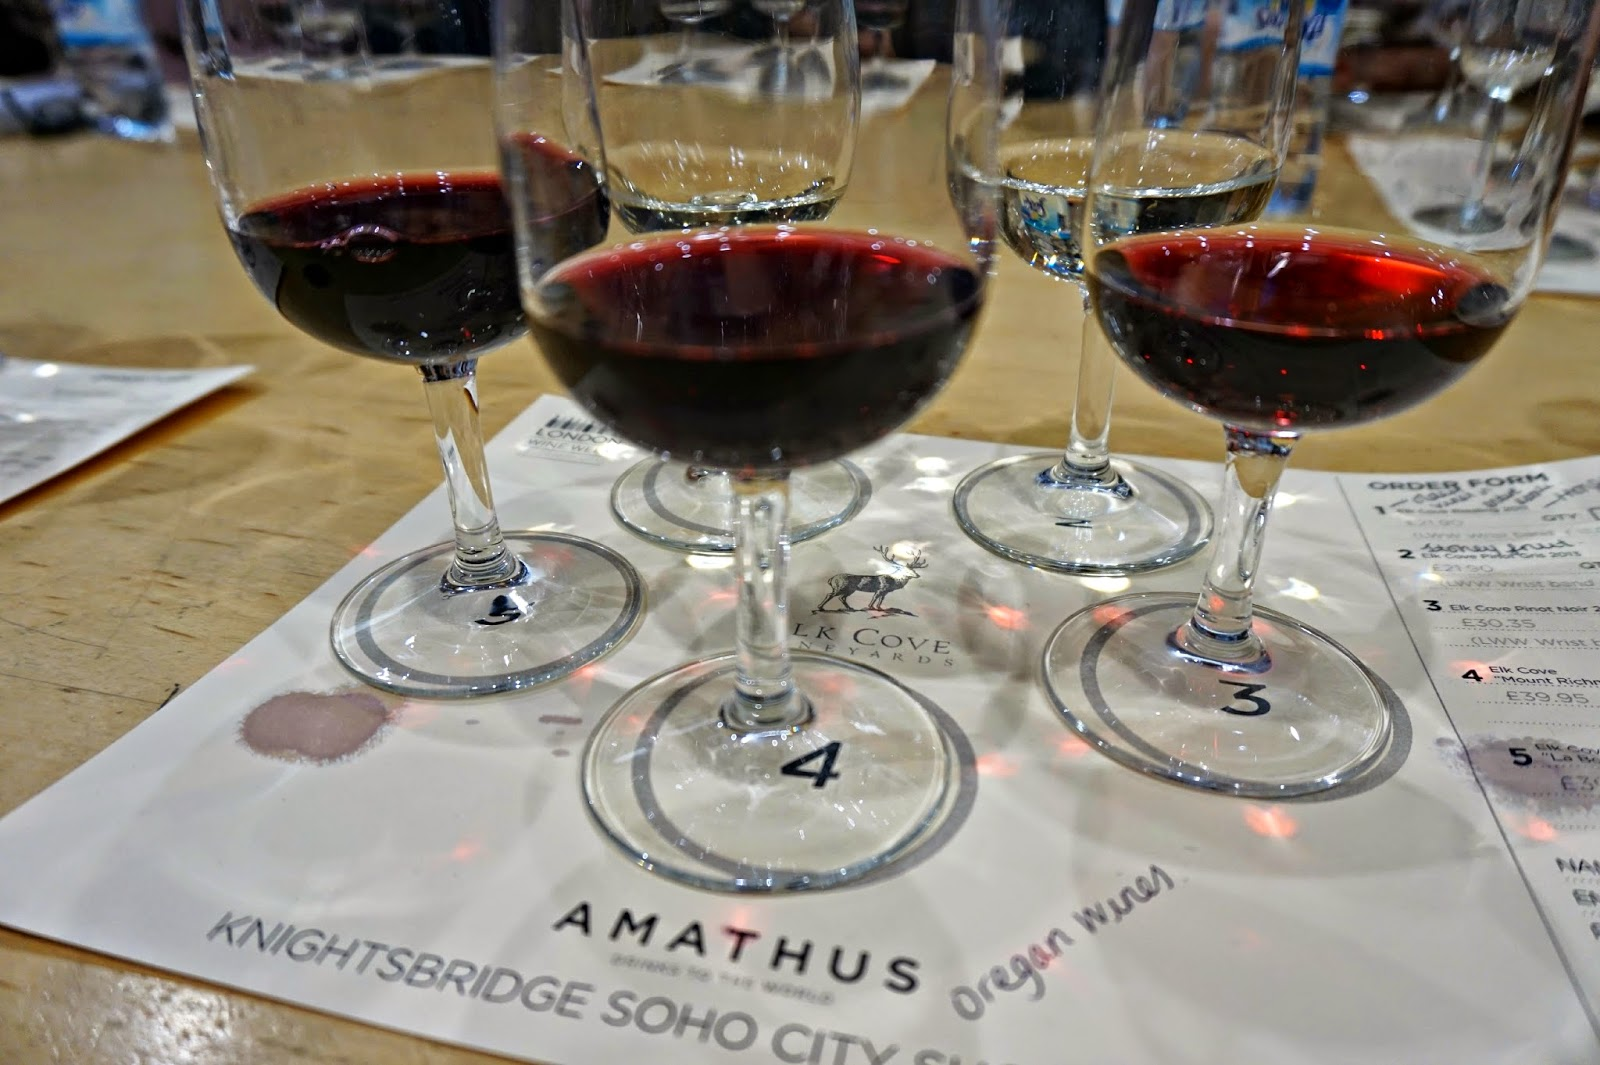 Wine Tasting Amathus London London Wine Week